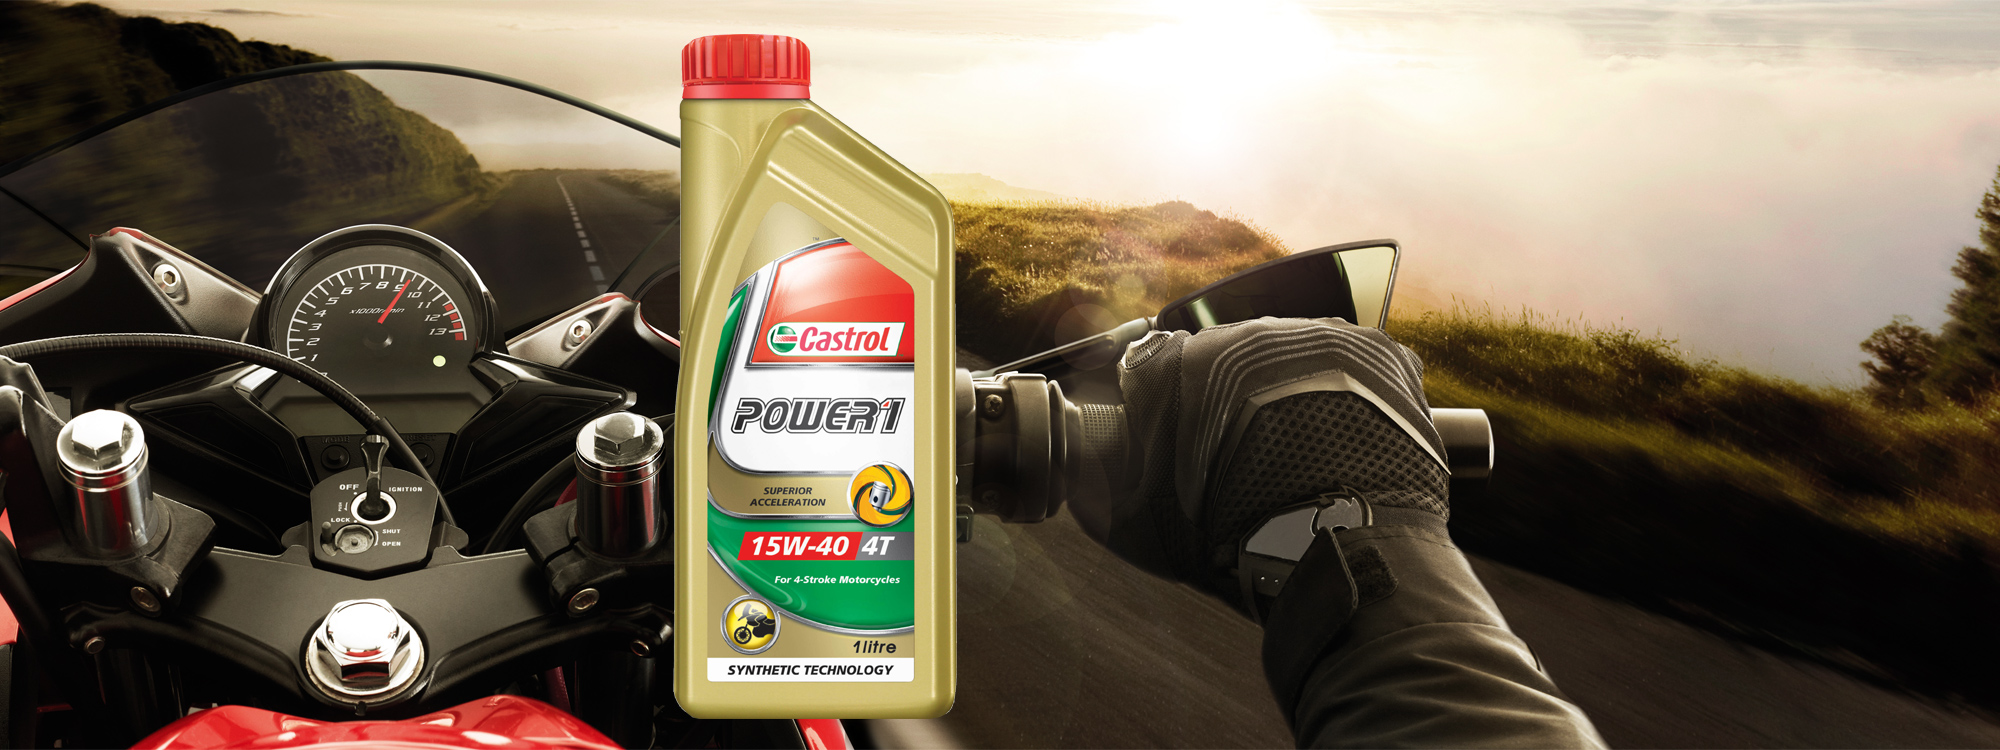 Engine Coolant Low >> Castrol POWER1 - Motorcycle & Scooter Engine Oil | Castrol Singapore | Castrol POWER1 Brand ...